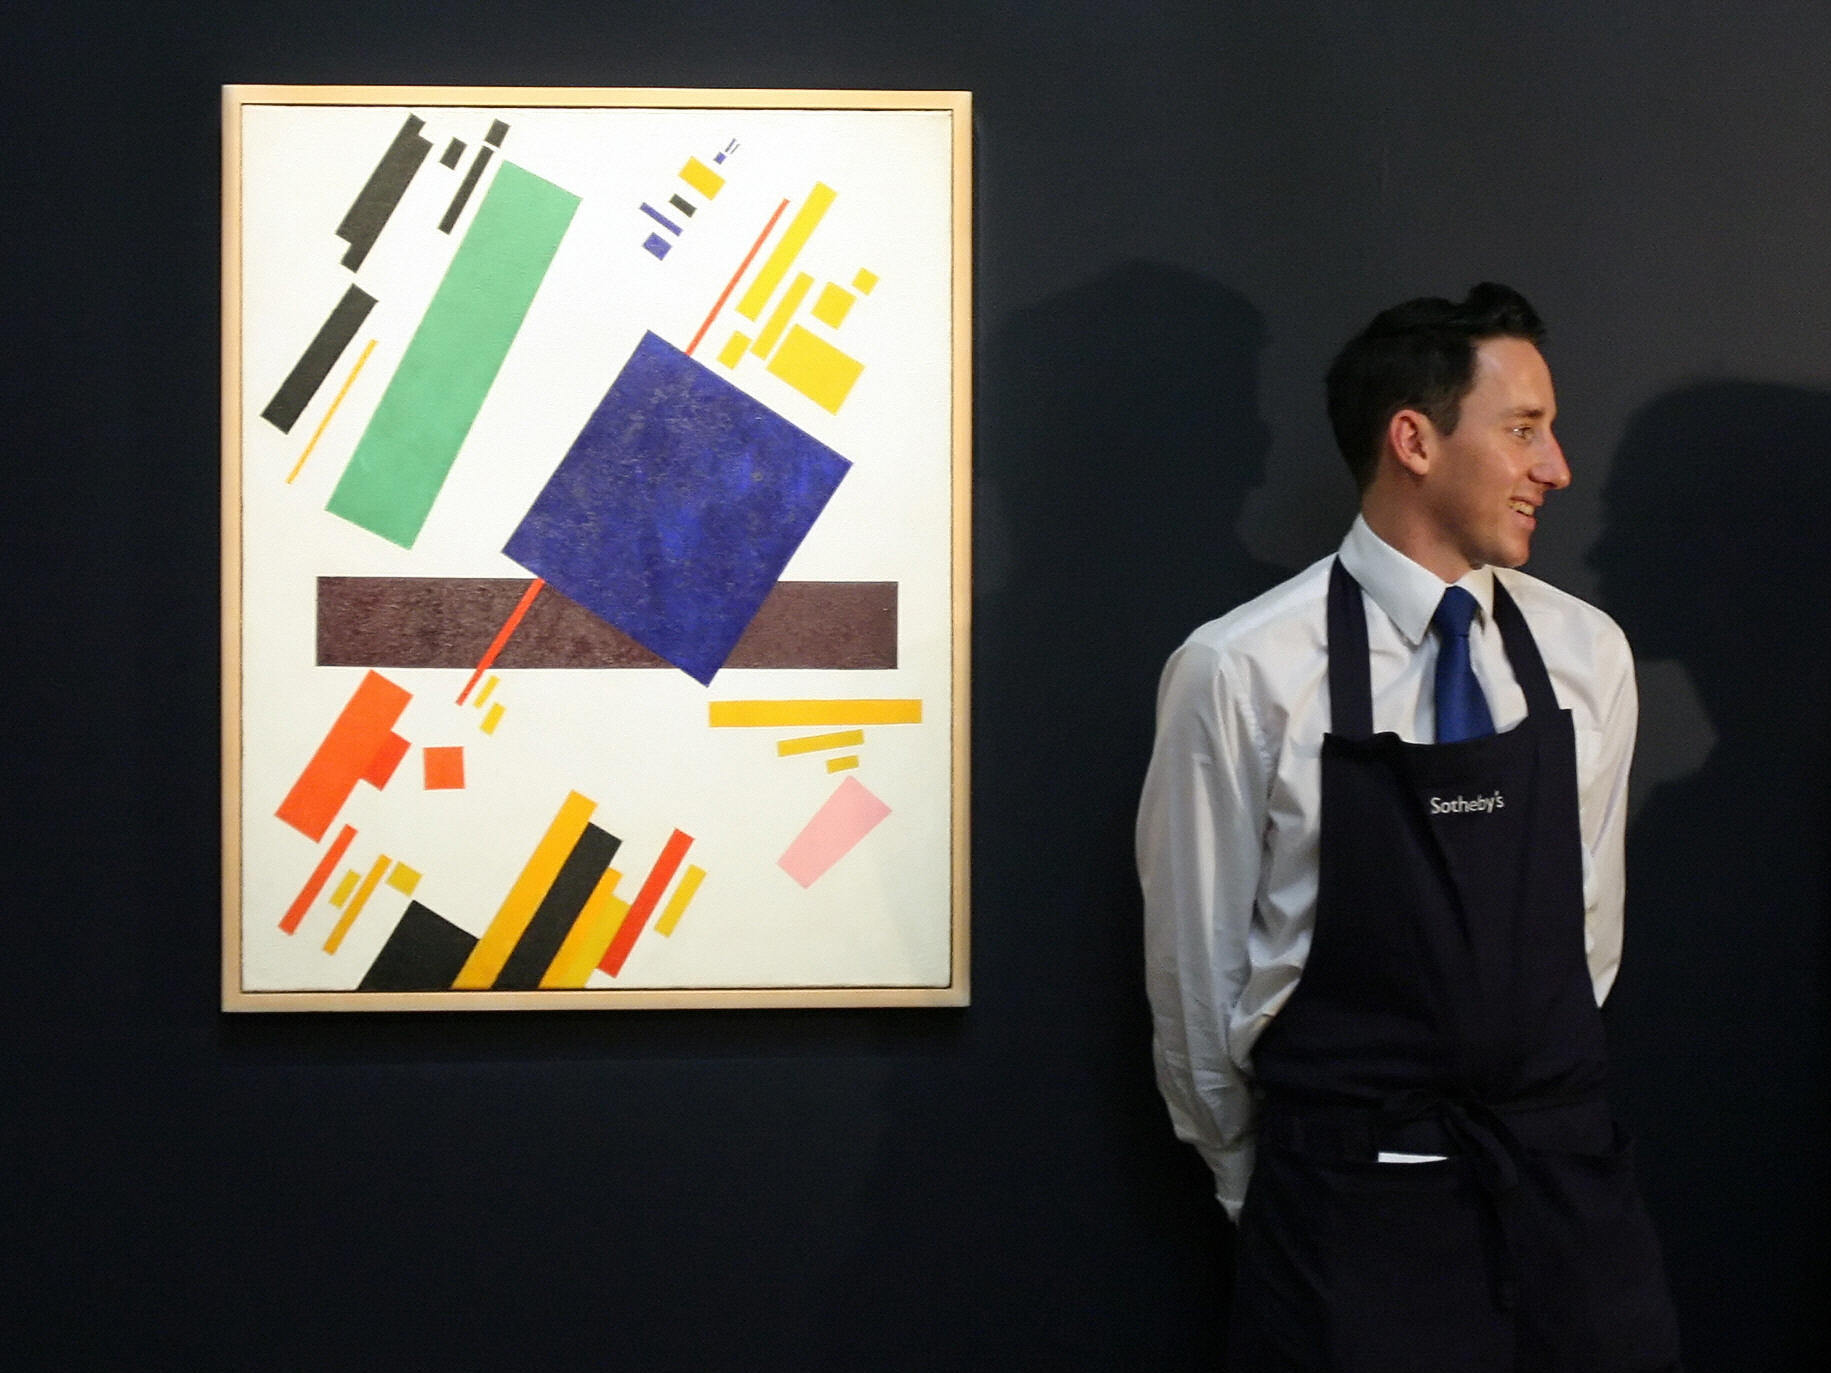 Suprematist Composition by Kazimir Malevich is displayed at the Sotheby's auction house in London in 2008. it set a record for the artist this month, selling at a Christie's New York auction for $86 million.